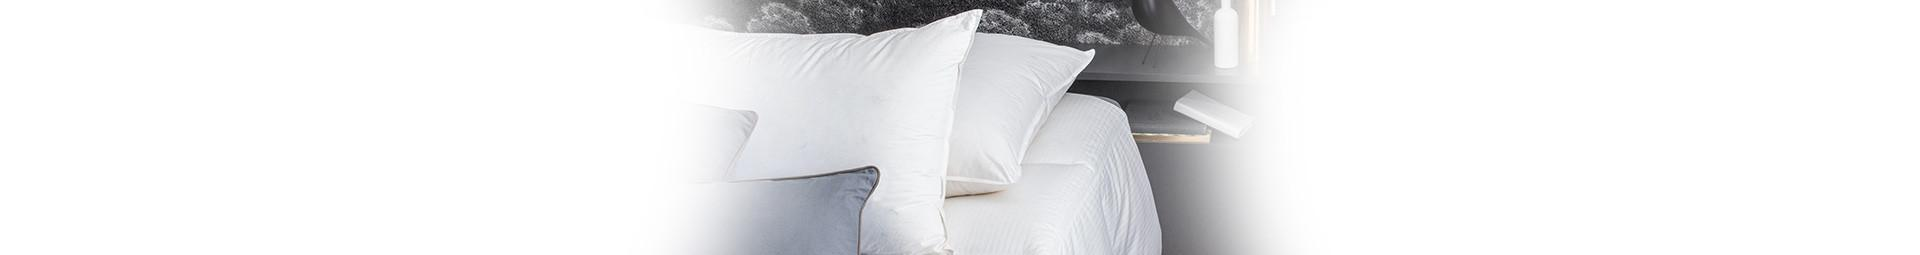 Soft Pillow with natural French down filling, Soft pillows made in France - Pyrenex